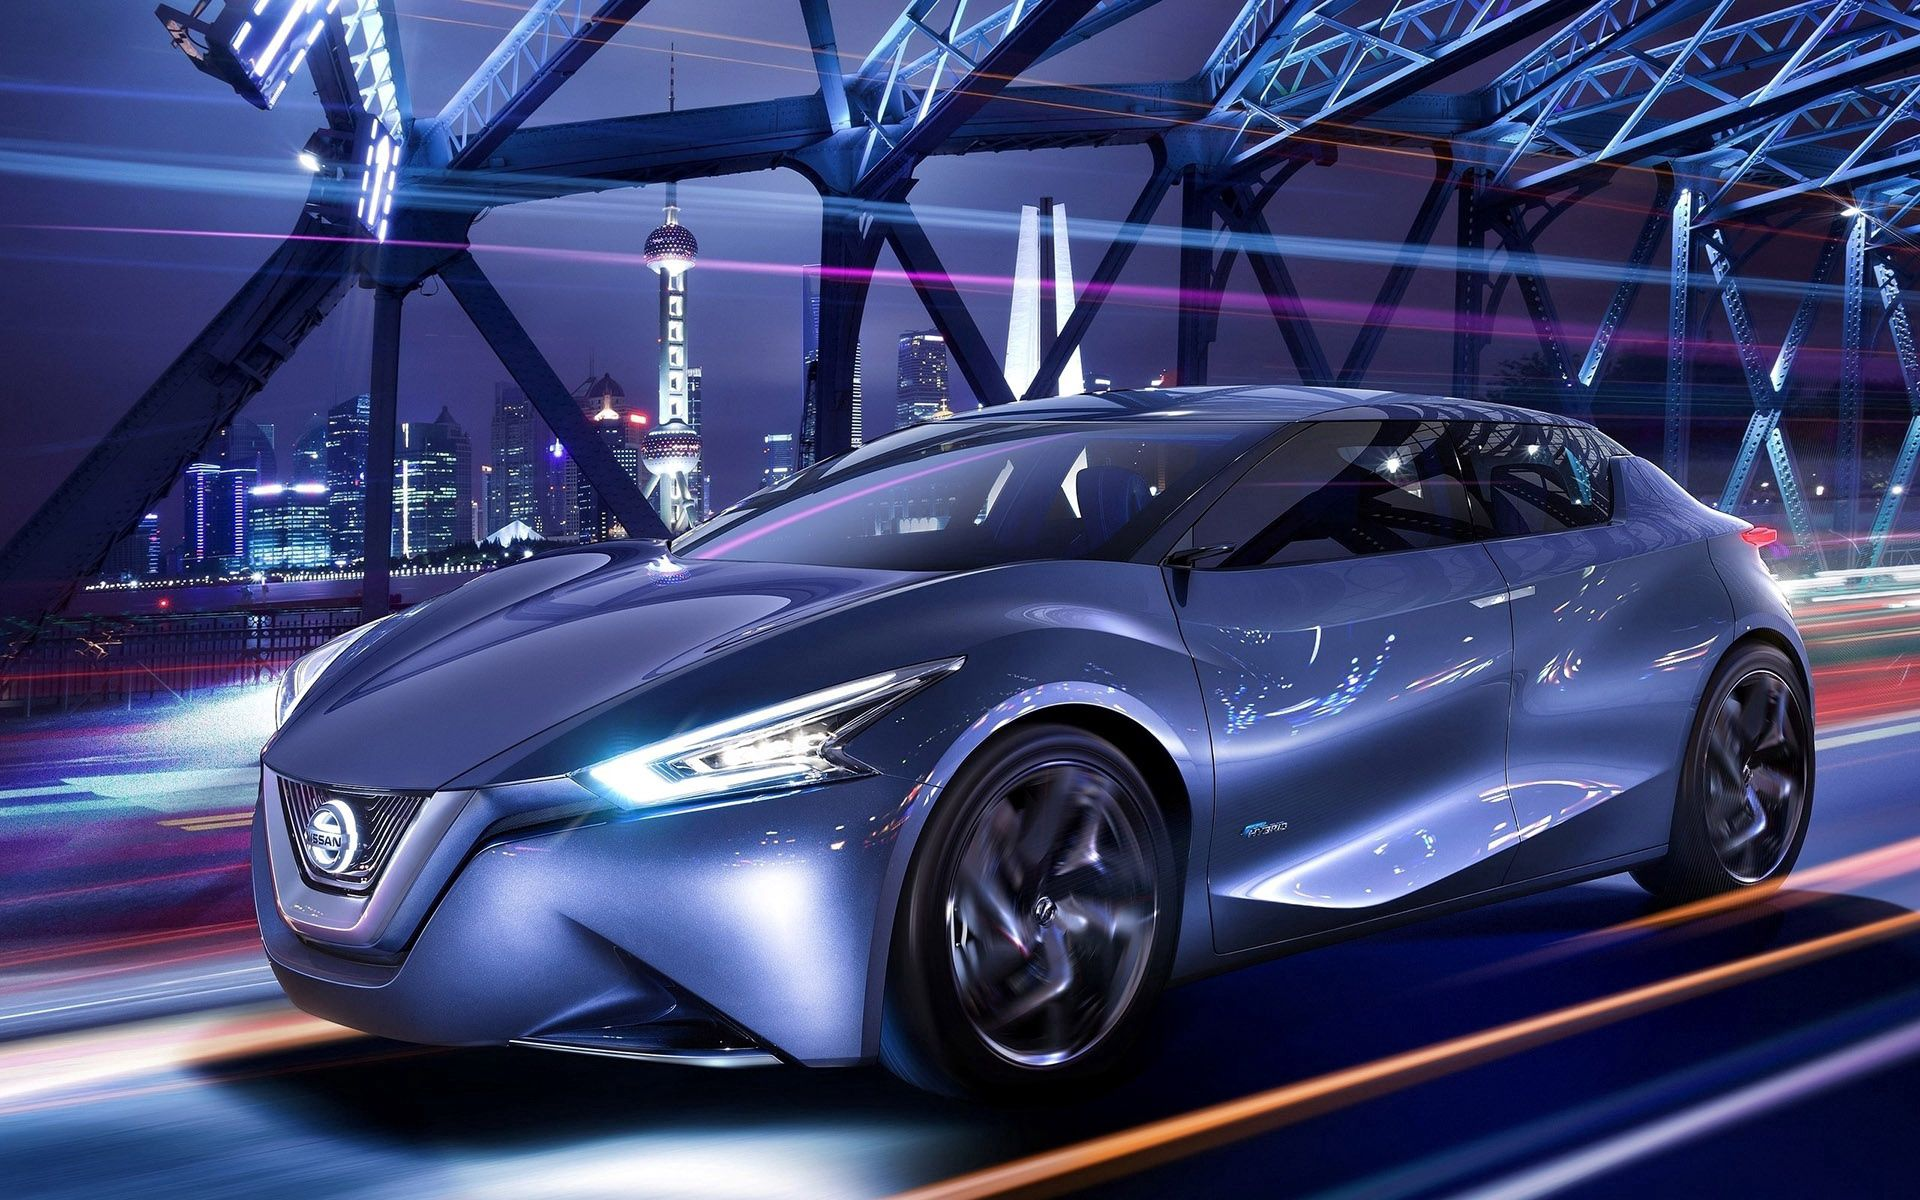 95868 Screensavers and Wallpapers Nissan for phone. Download Nissan, Cars, Concept, Nissan Friend-Me Concept, Nissan Friend-Mi Concept pictures for free